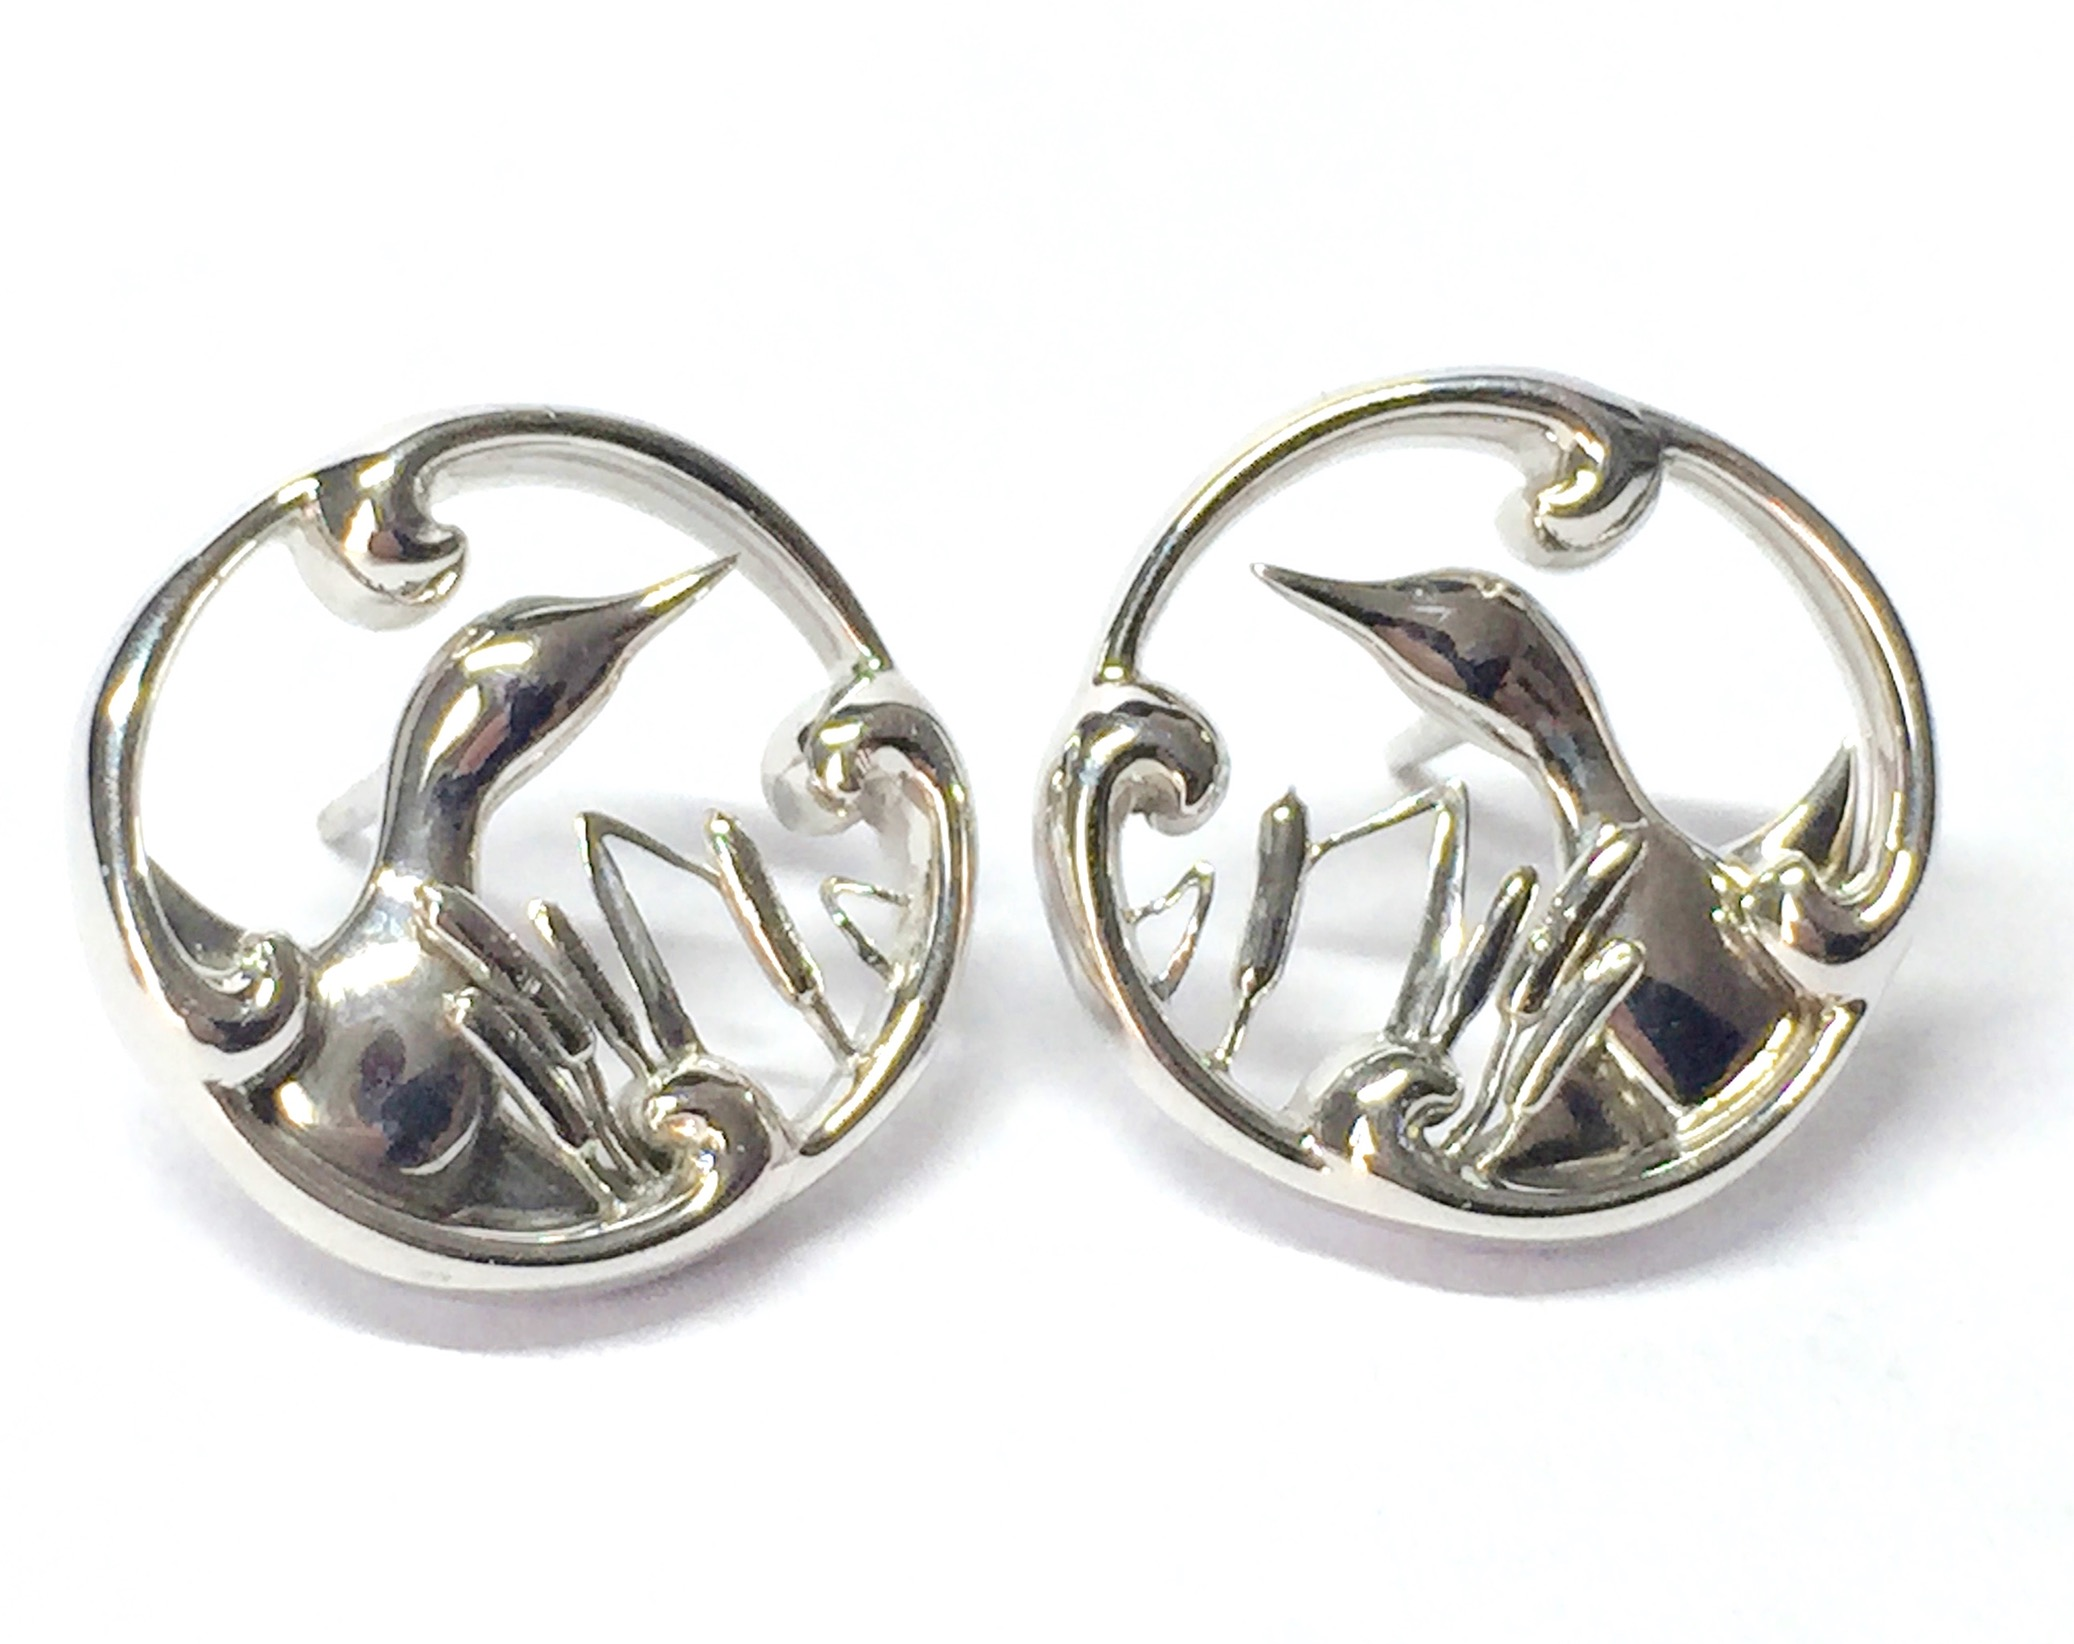 Bespoke white gold duck earrings. Made in Chichester, England.